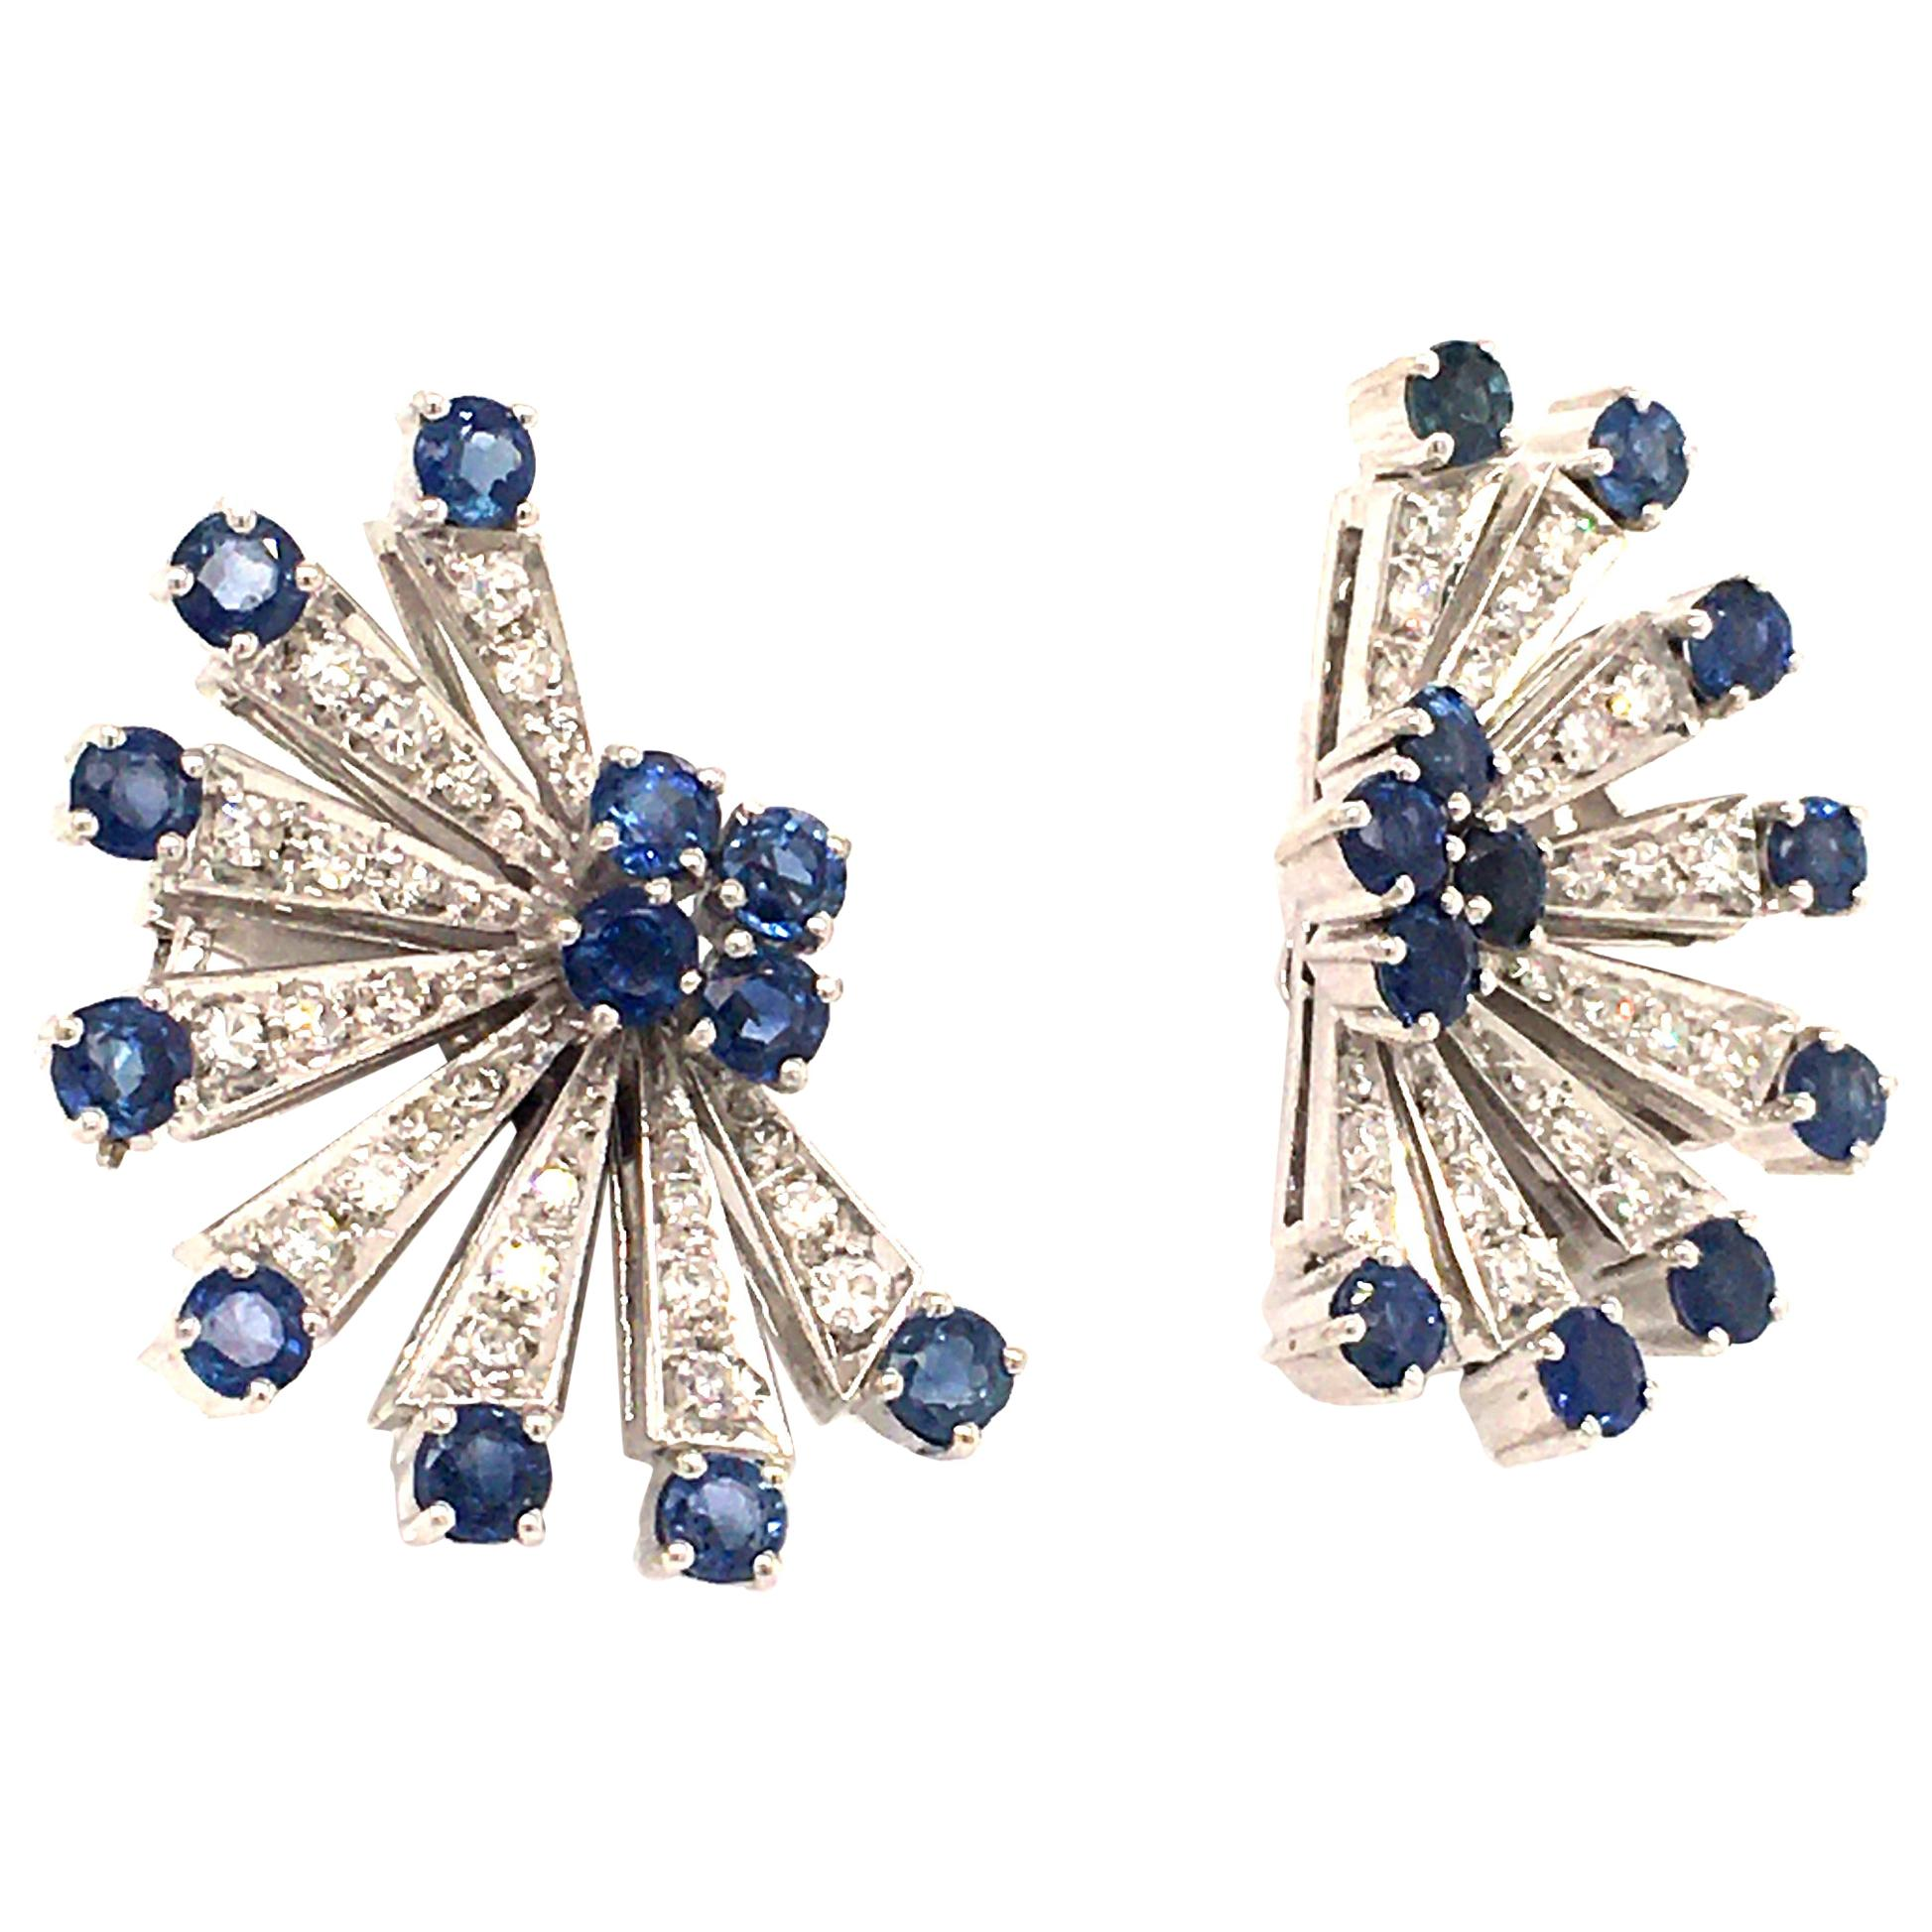 Sapphire and Diamond Earclips in 18 Karat White Gold